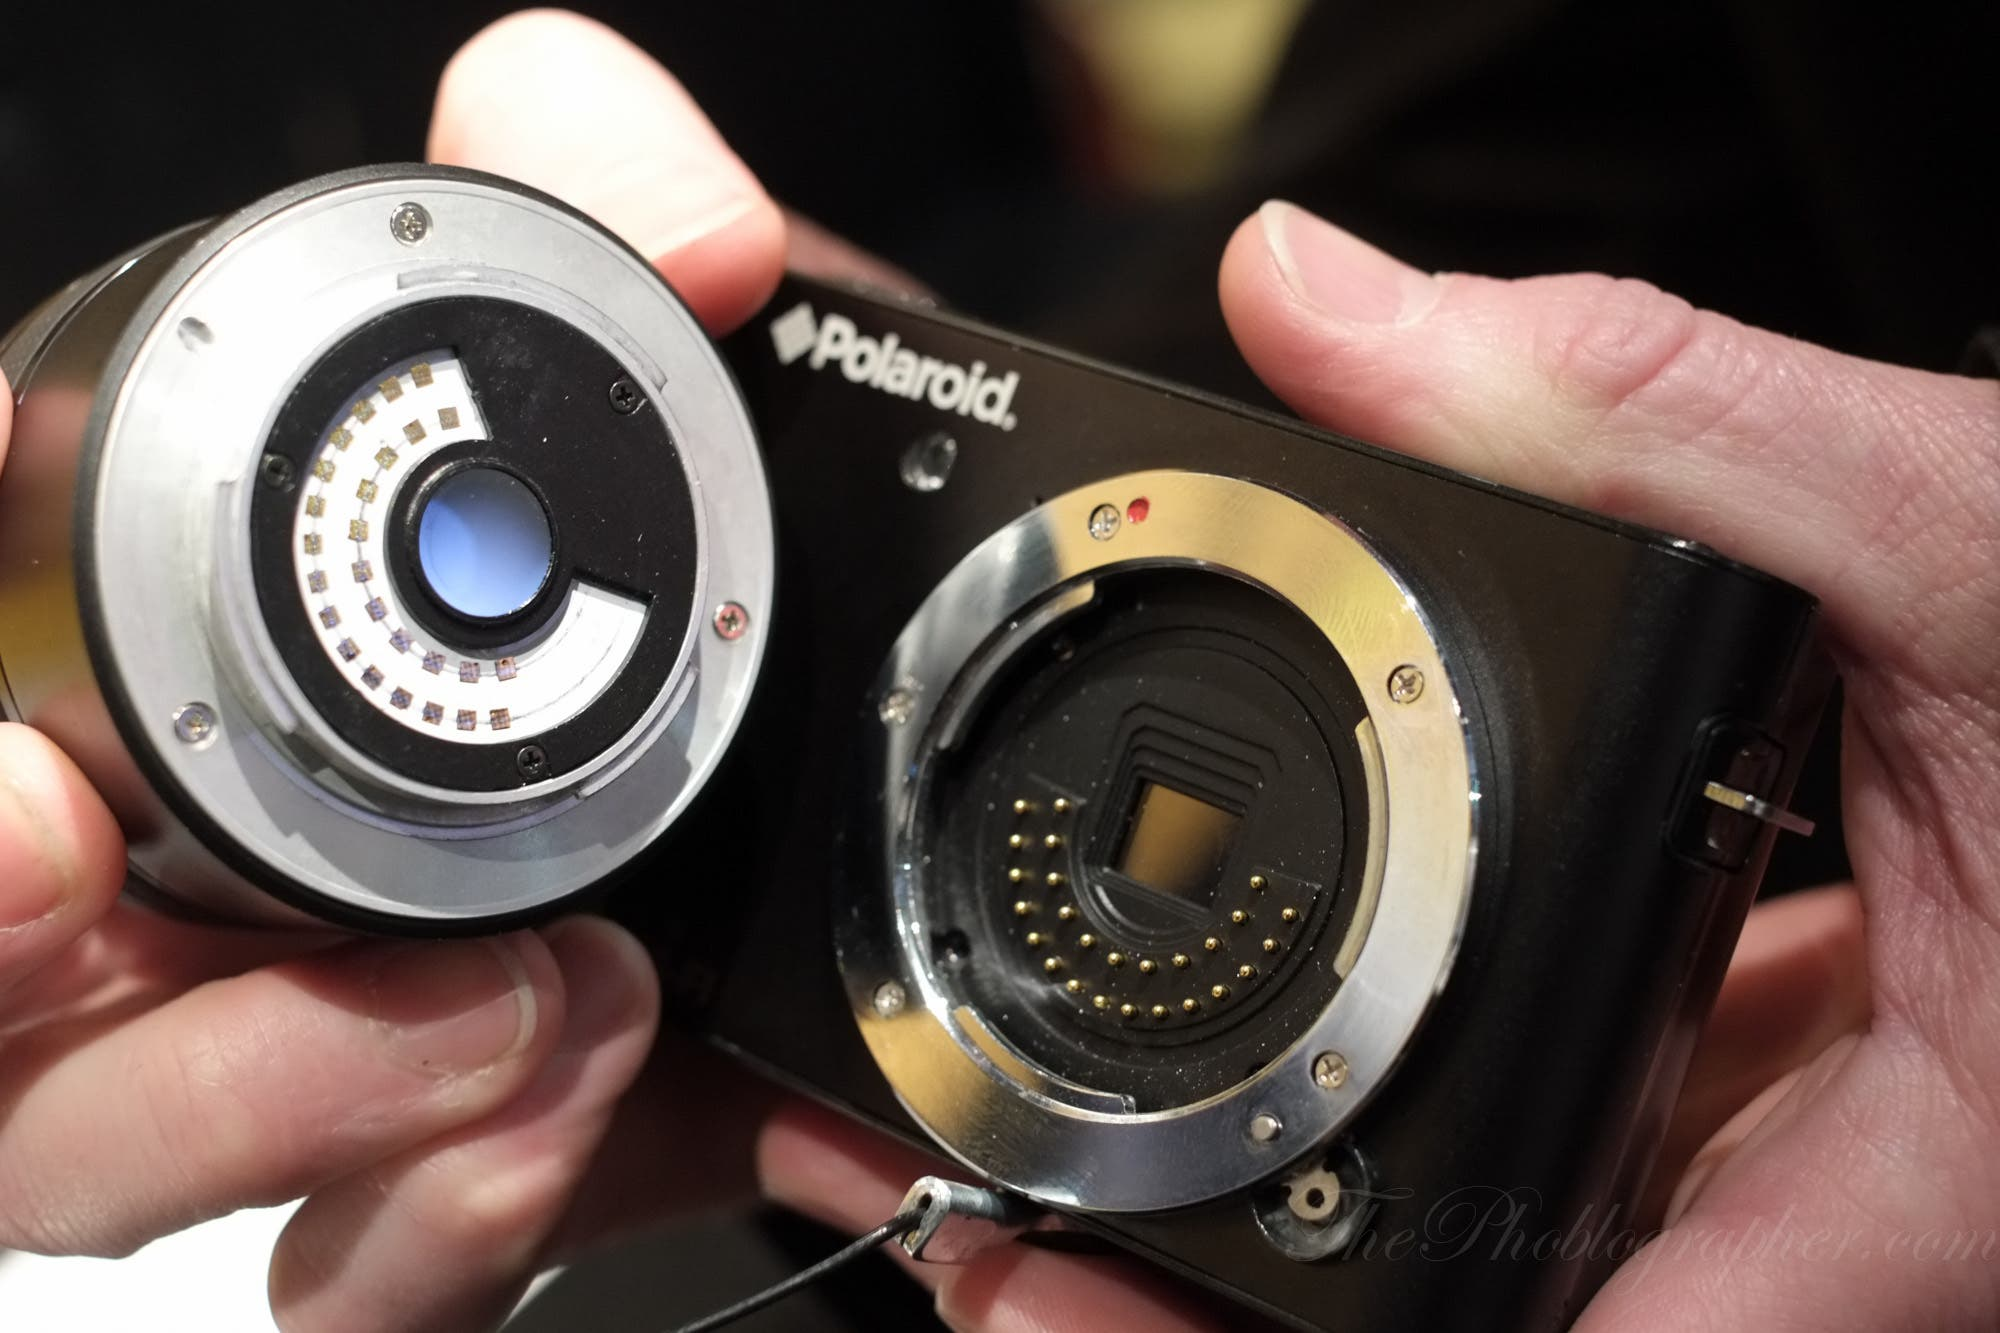 Clearing Some Confusion Up Over The New Polaroid Mirrorless Interchangeable Lens Cameras